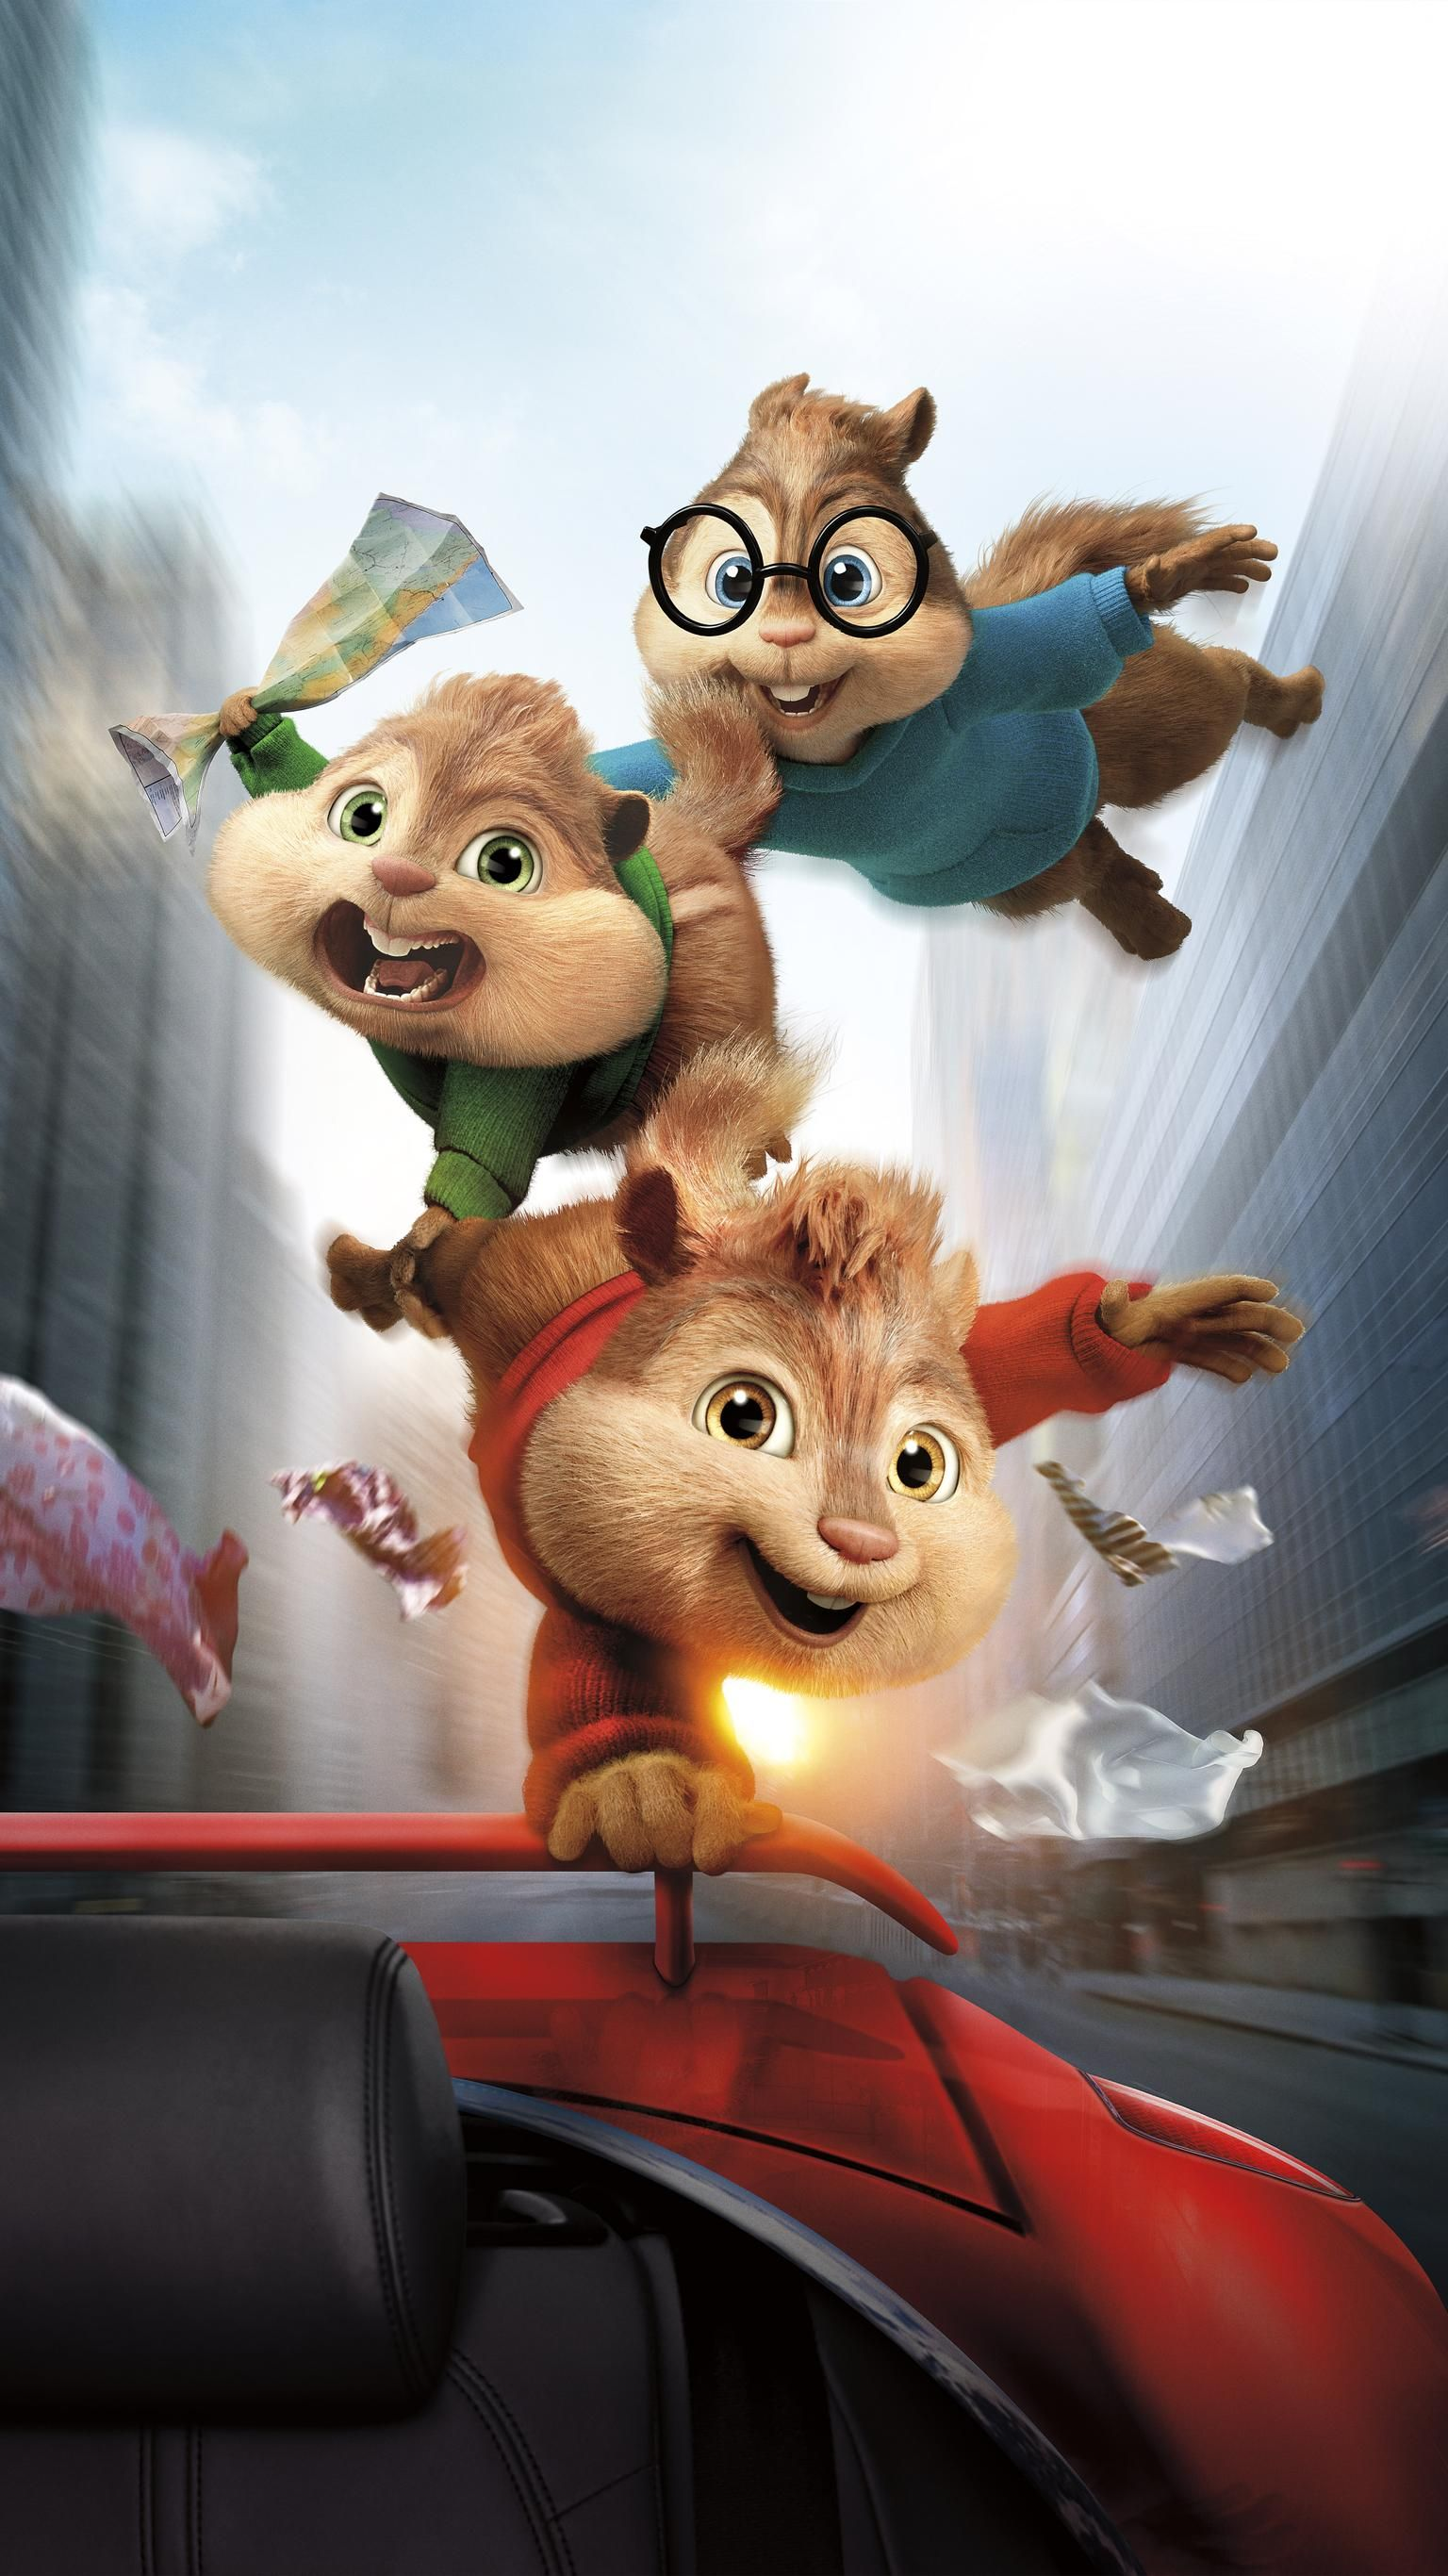 Alvin And The Chipmunks The Road Chip 2015 Phone Wallpaper